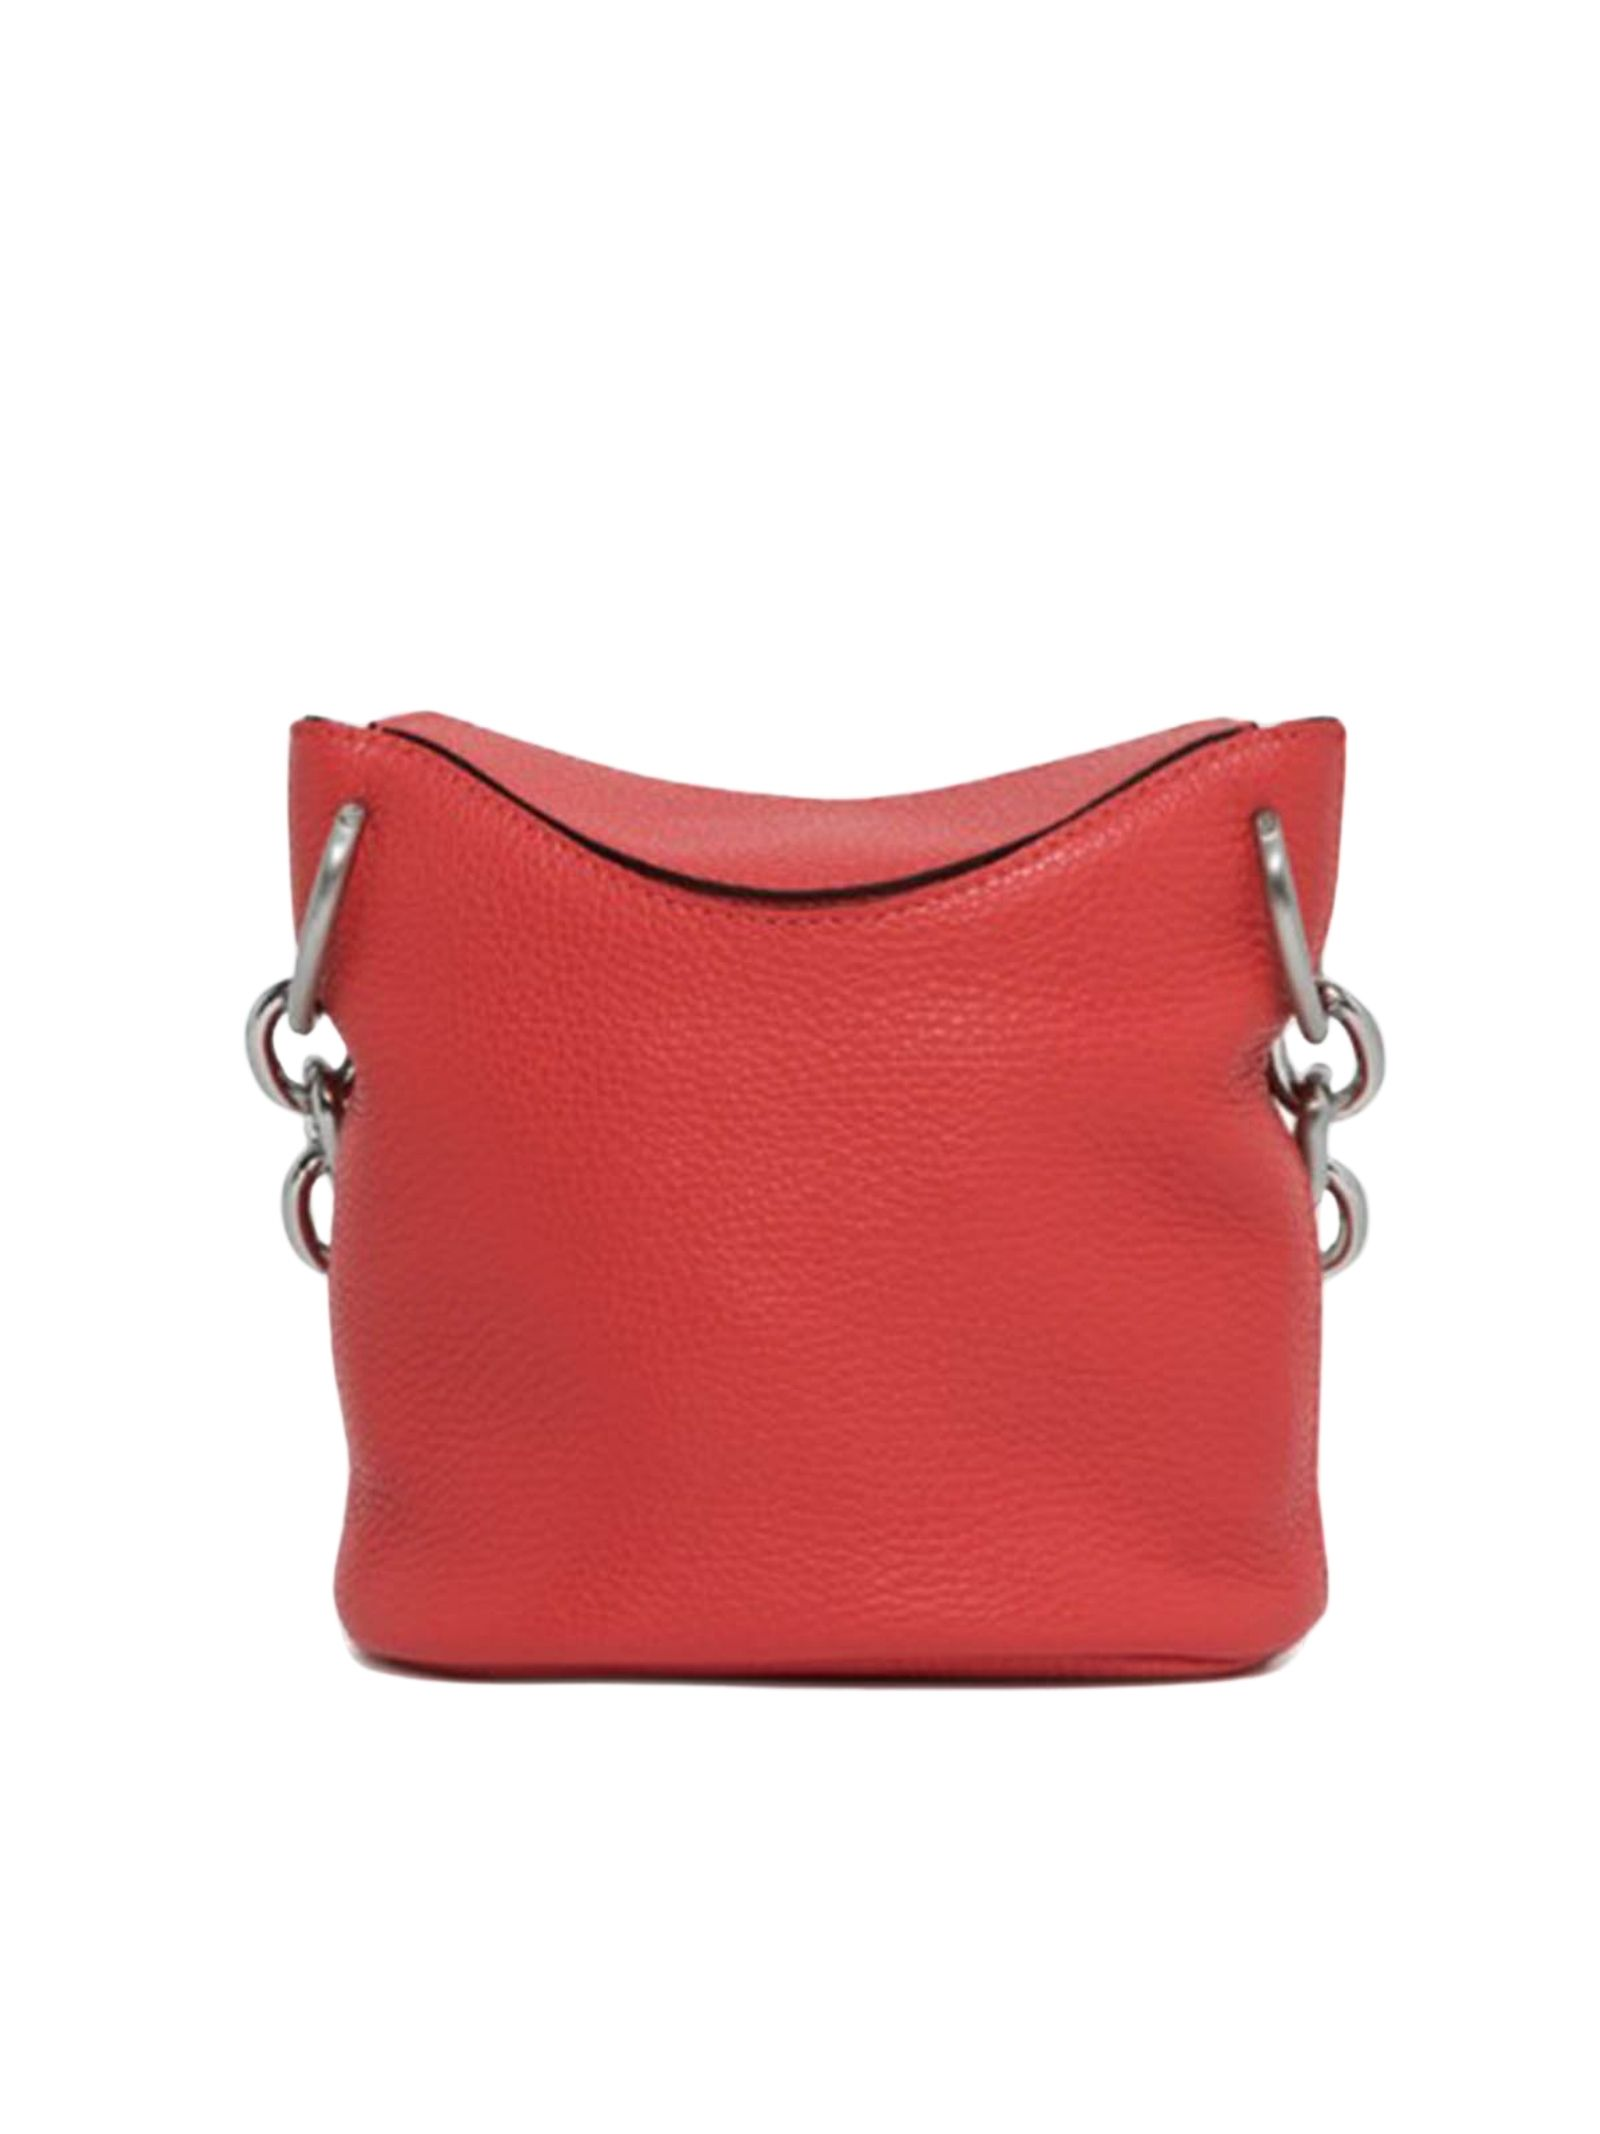 Sophia Small Women's Satchel Bag In Red Leather With Silver Chain And Adjustable And Removable Shoulder Strap Gianni Chiarini   Bags and backpacks   BS851511707